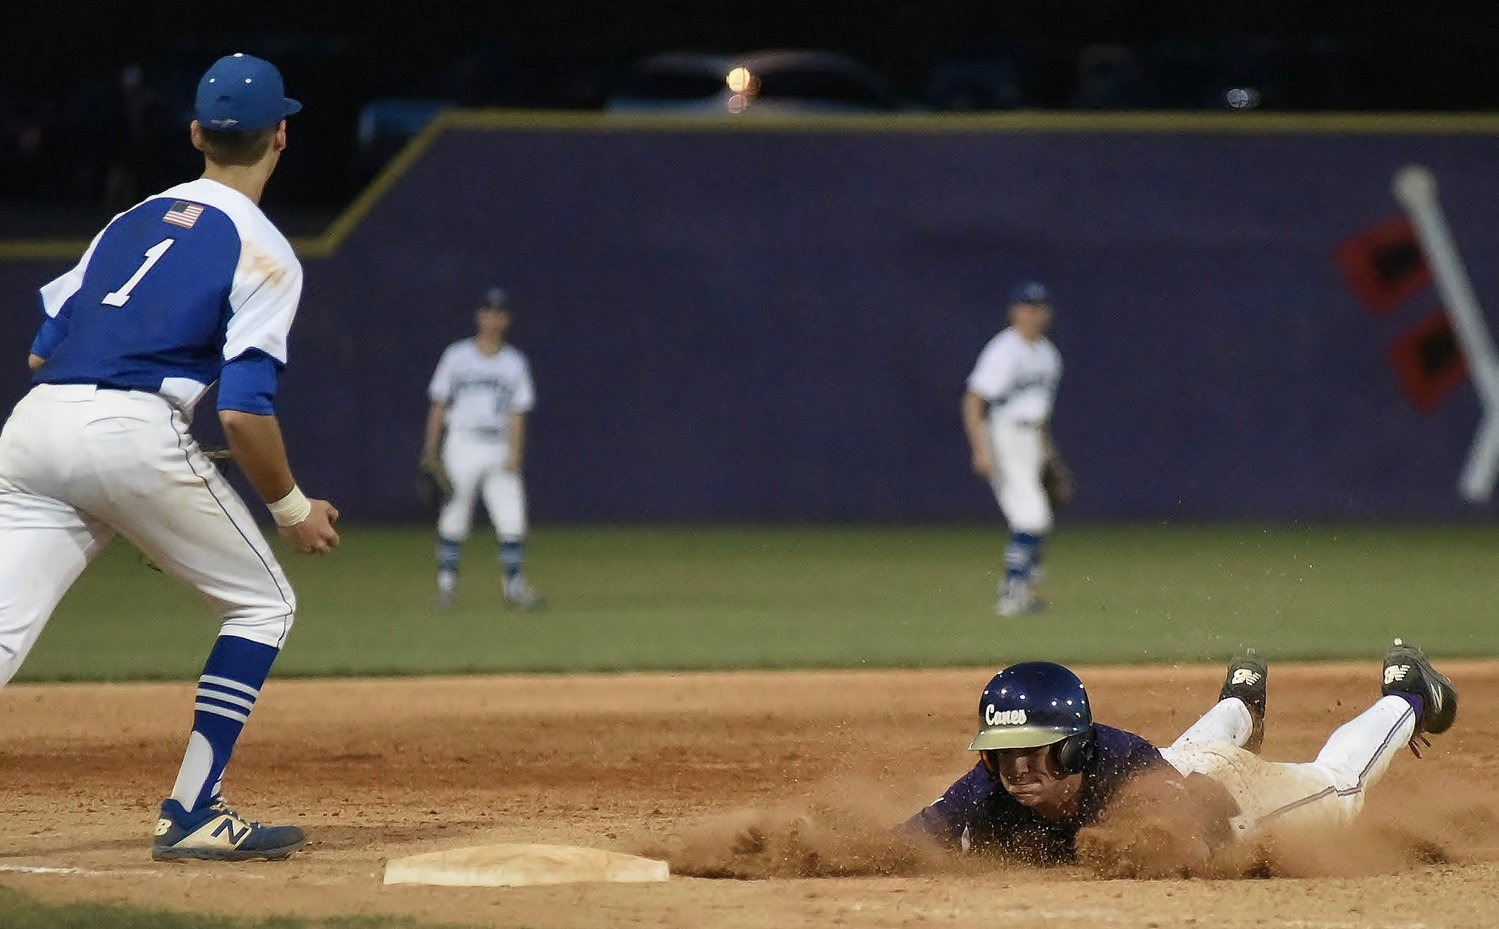 Cartersville's Davis Williams slides into third base after a throwing error by Oconee County during Game 2 of Wednesday's Class 4A state tournament first-round doubleheader. The Canes won both games in shutout fashion, 10-0 and 5-0, to advance to the Sweet 16.